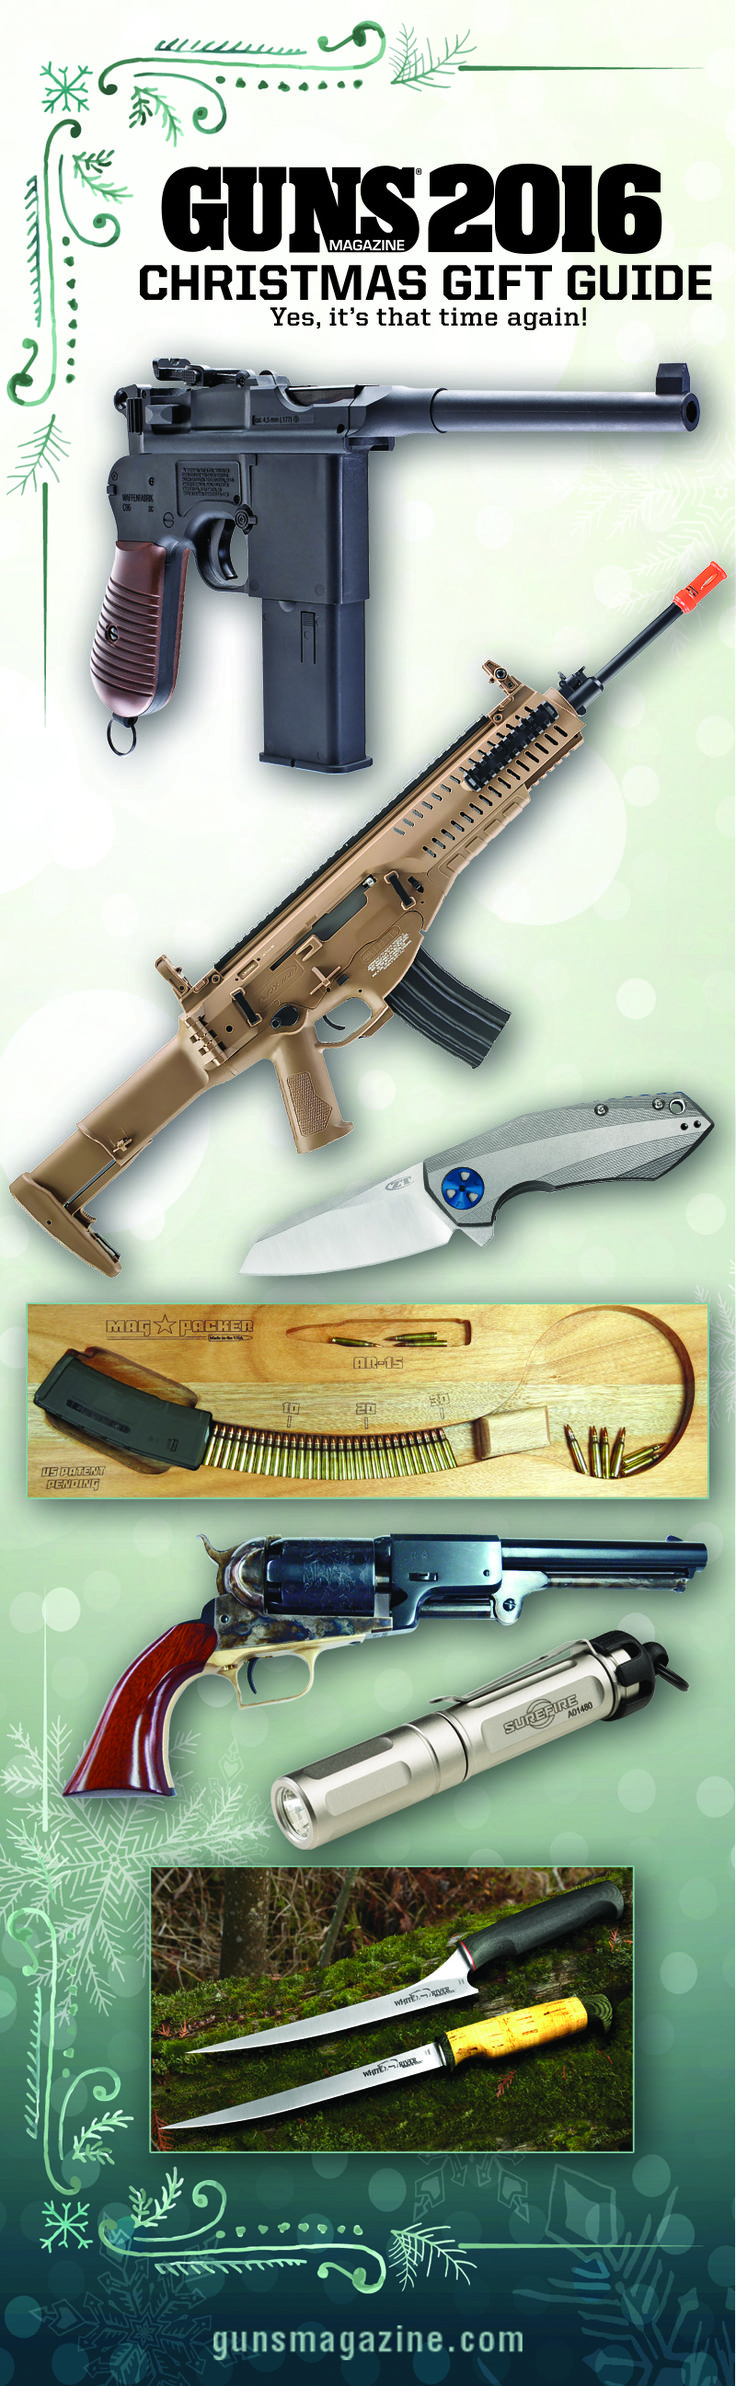 GUNS 2016 Christmas Gift Guide | Yes, It's That Time Again! | By John Connor | You folks know the drill: Look at the calendar, take a deep breath, grab a pencil and pad, and start filling in the blanks on your Christmas gift list! There's something here for all your shooting buddies and hunting pals, so let's get to it, shall we? | © GUNS Magazine 2016